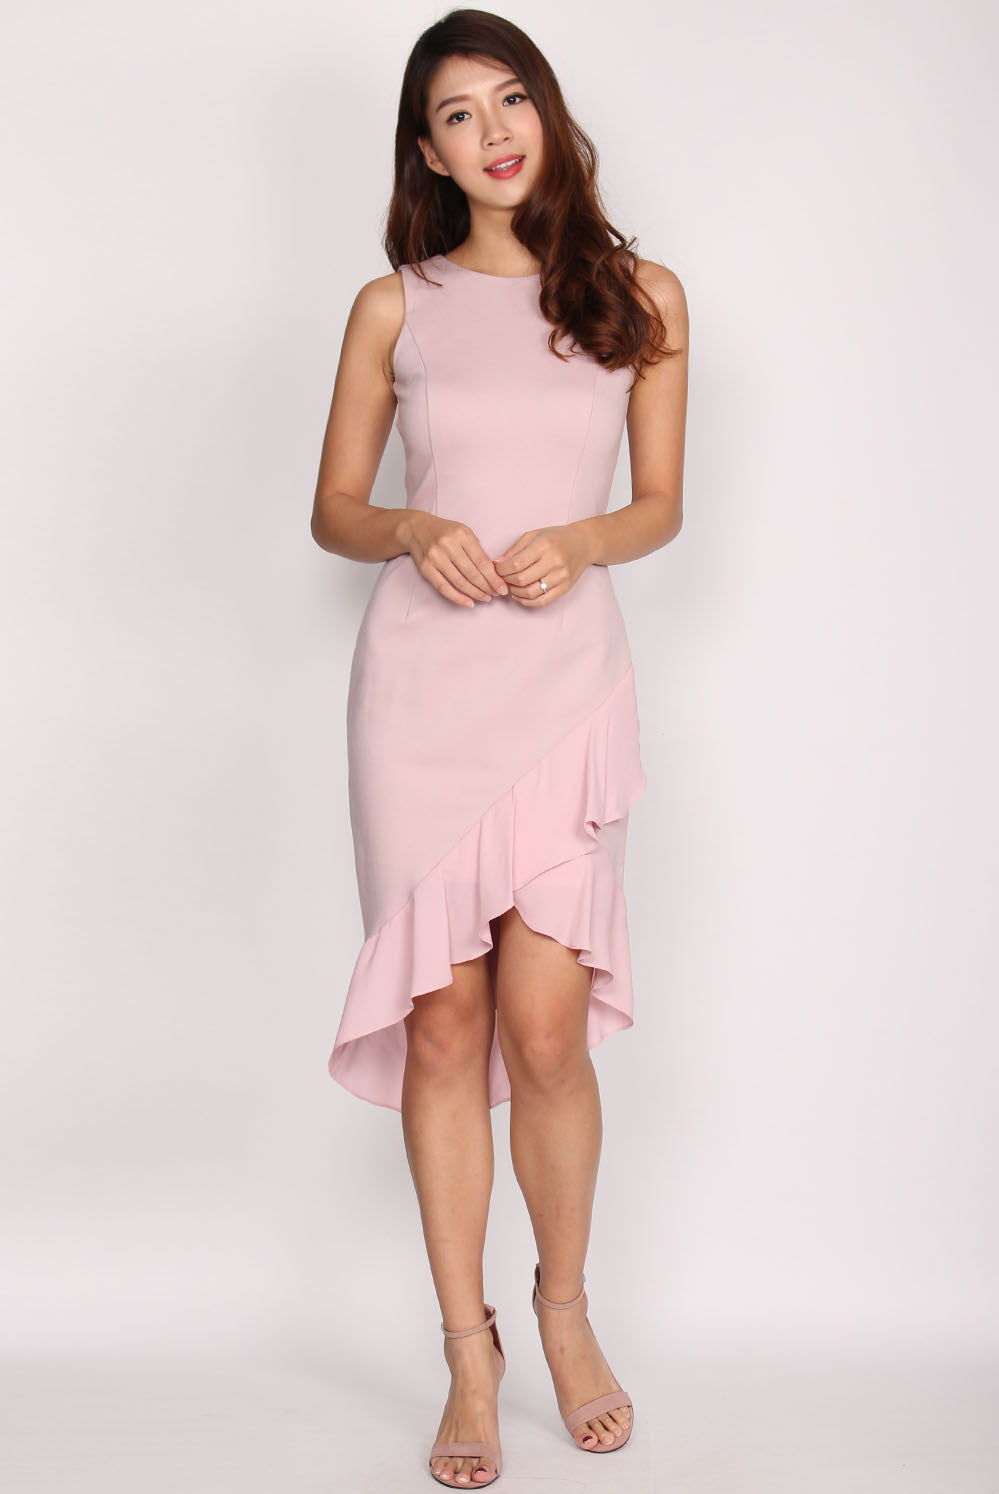 *Premium* Casey Mermaid Frill Dress In Blush